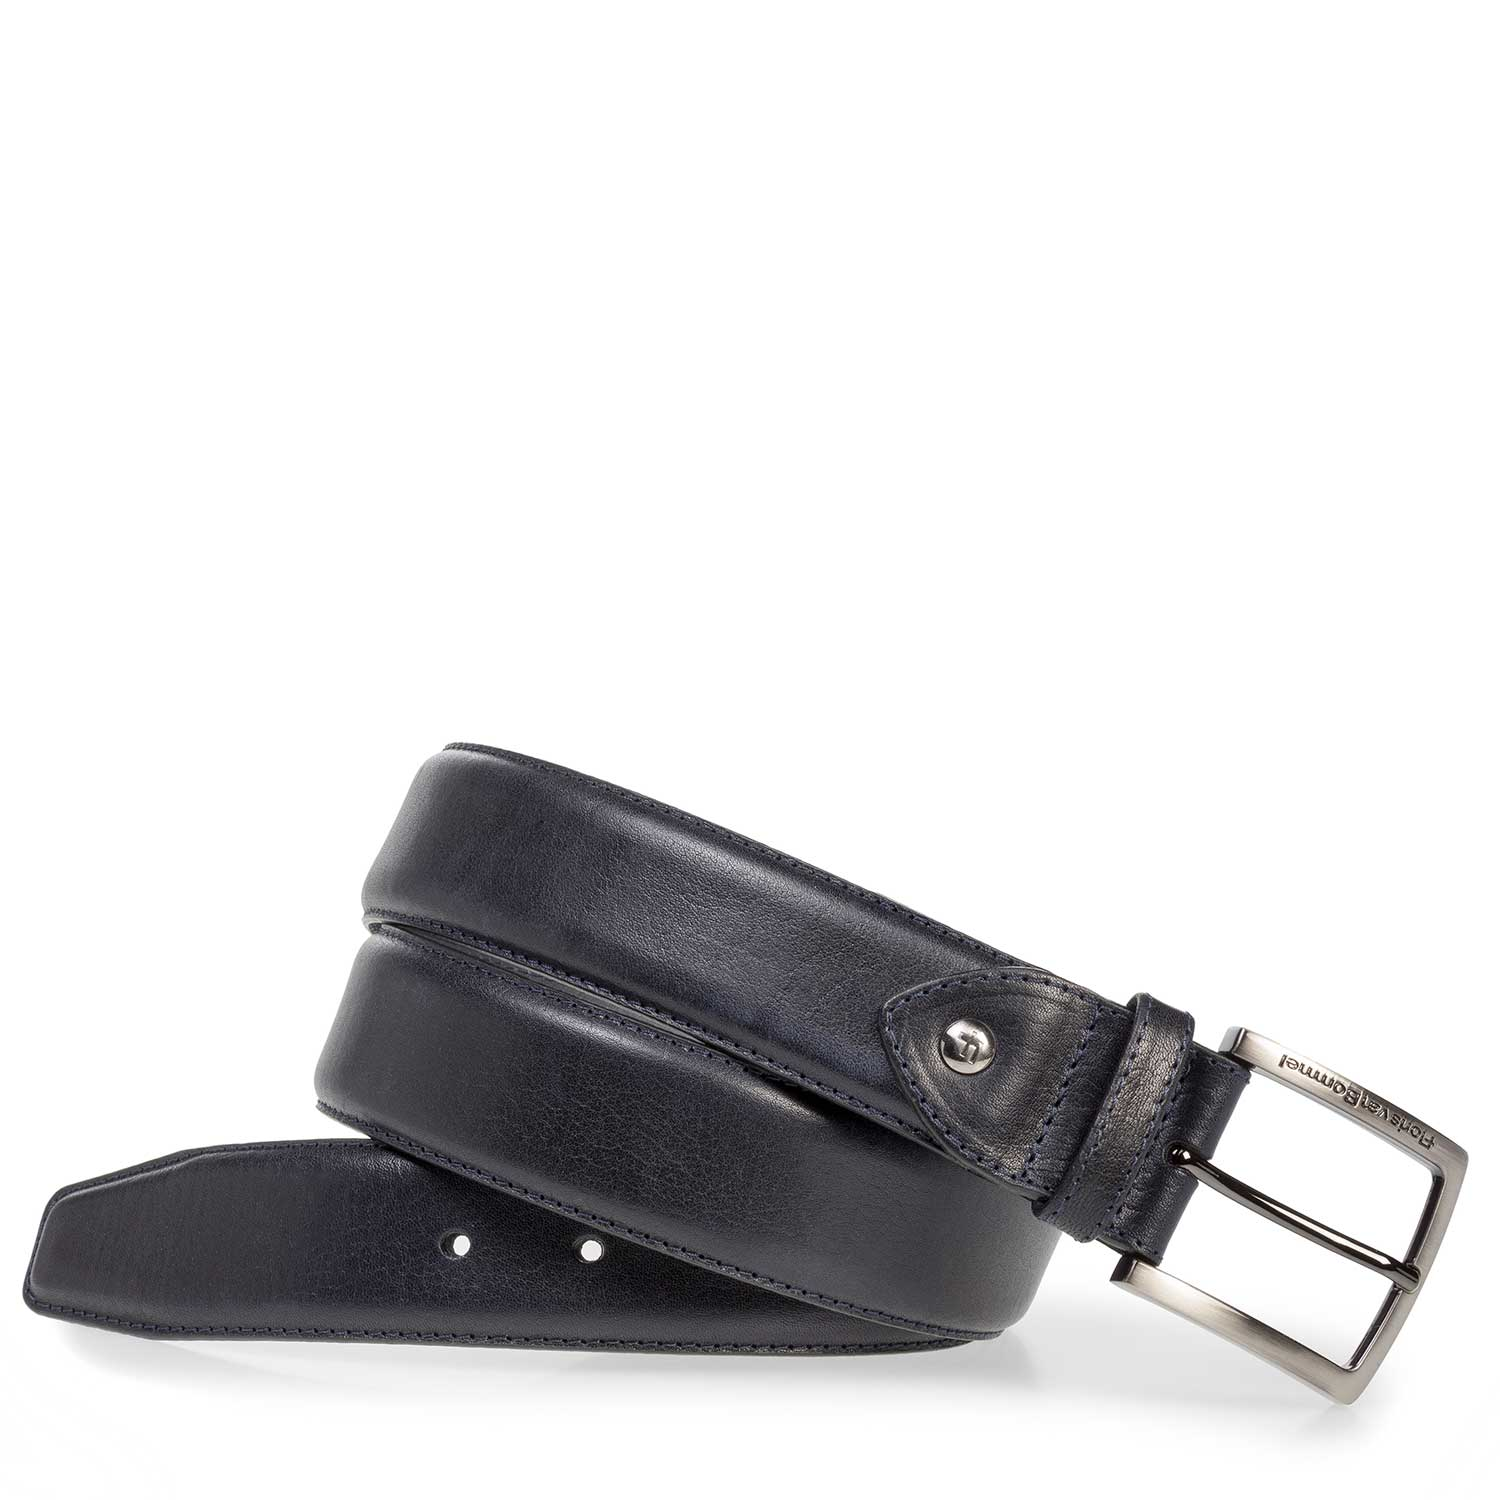 75202/36 - Dark blue calf leather belt